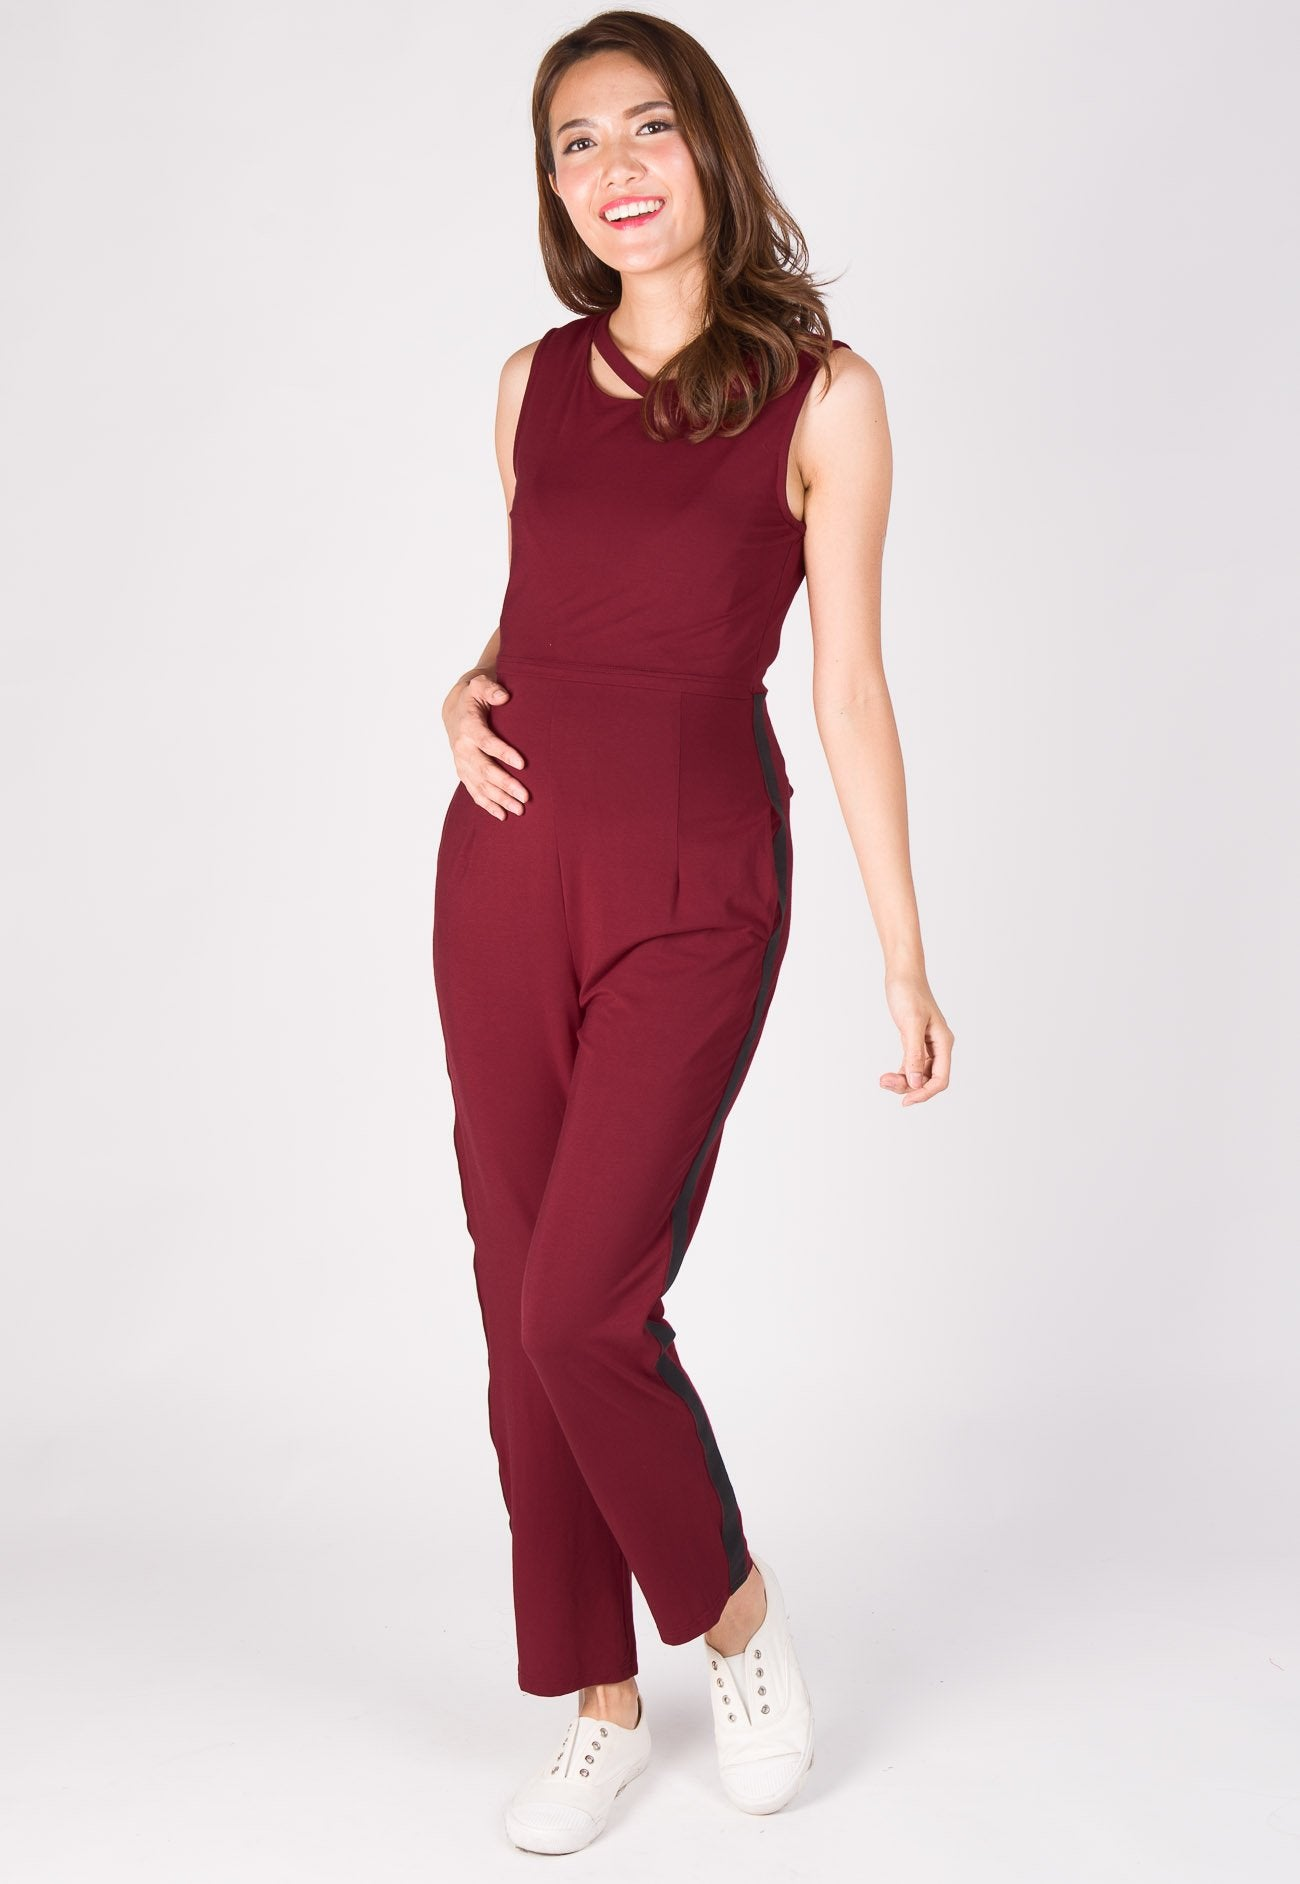 Sporty Side Band Nursing Jumpsuit in Maroon Nursing Wear Mothercot